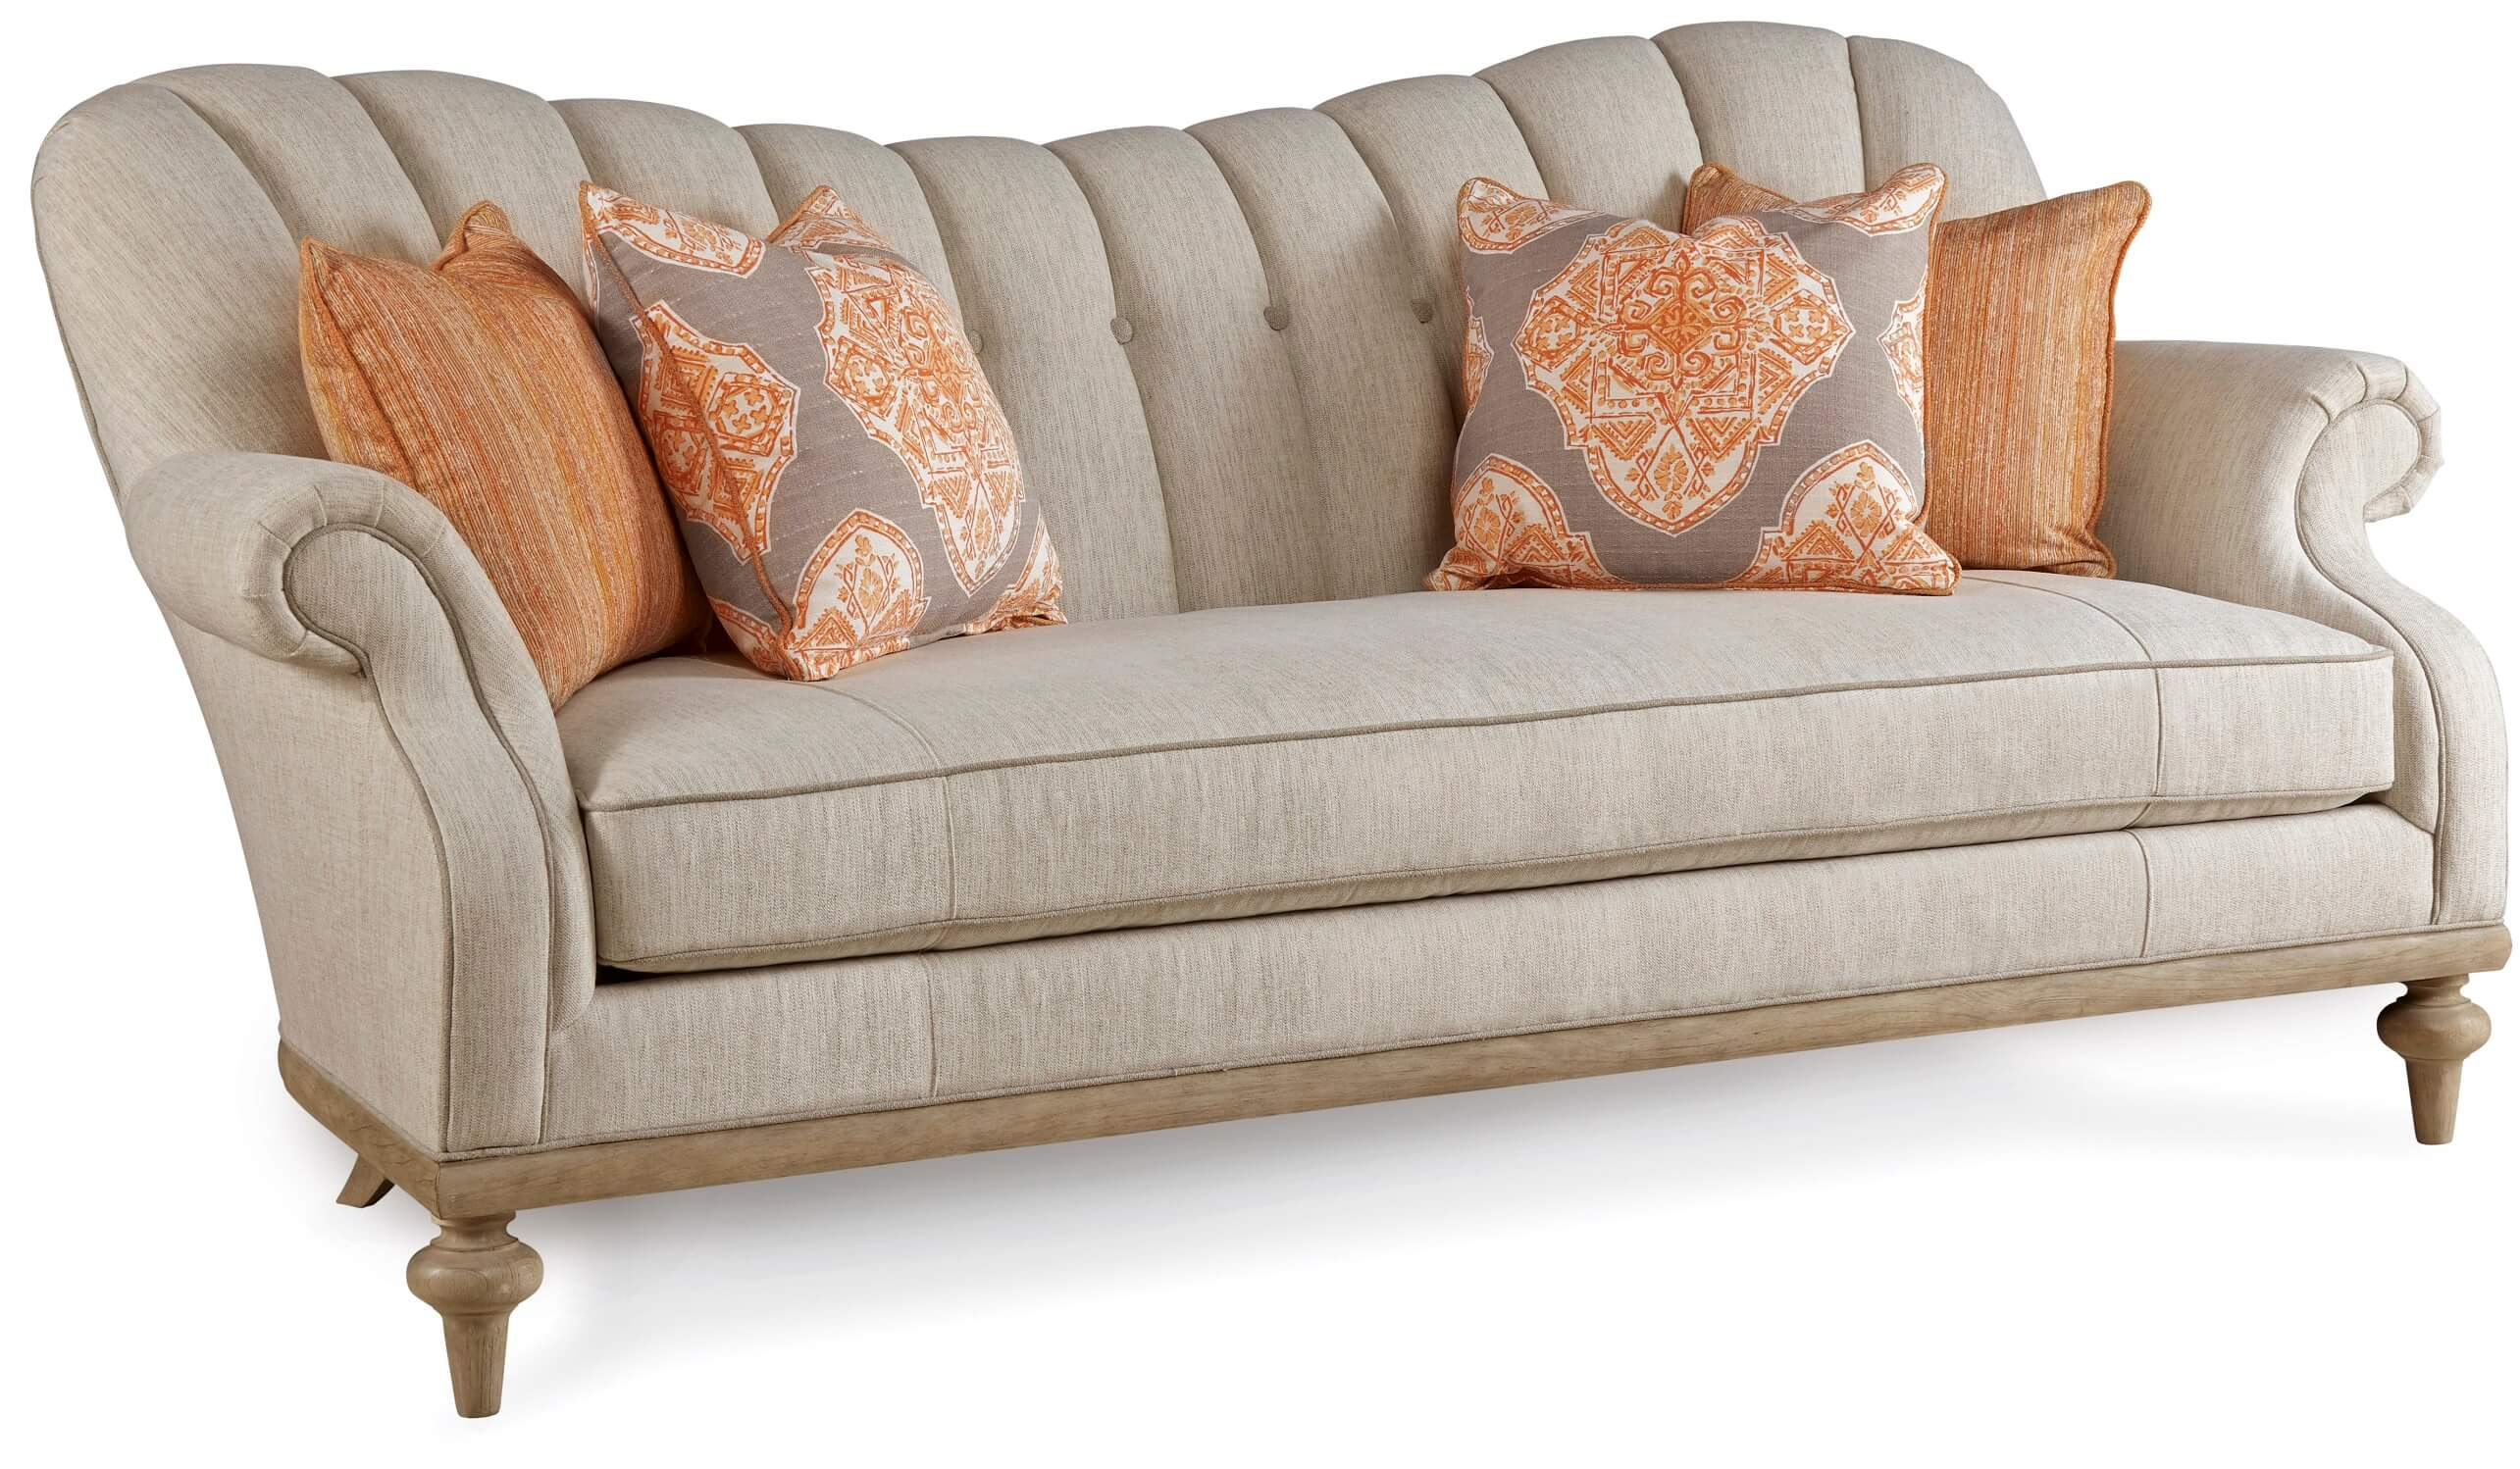 Phenomenal Collection One Brewster Channel Back Sofa By A R T Ibusinesslaw Wood Chair Design Ideas Ibusinesslaworg